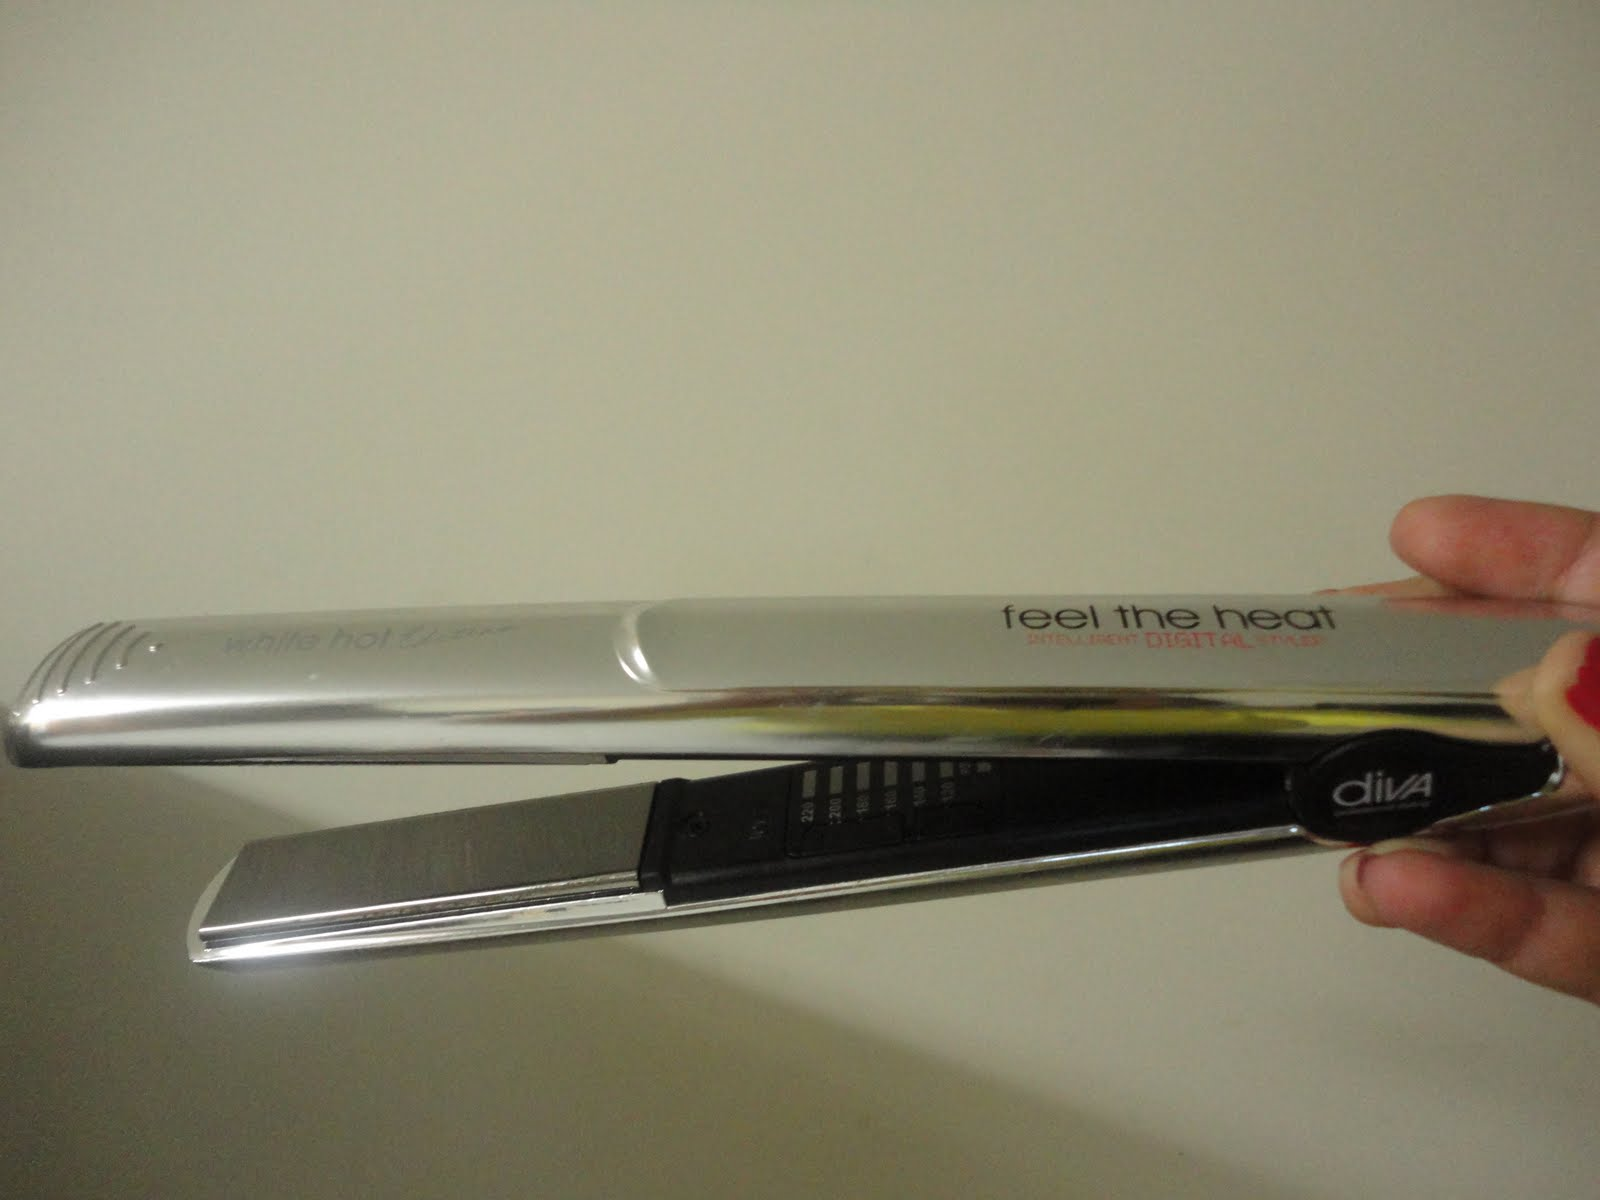 The Glamorous Diva Feel The Heat Titanium Straightener Review